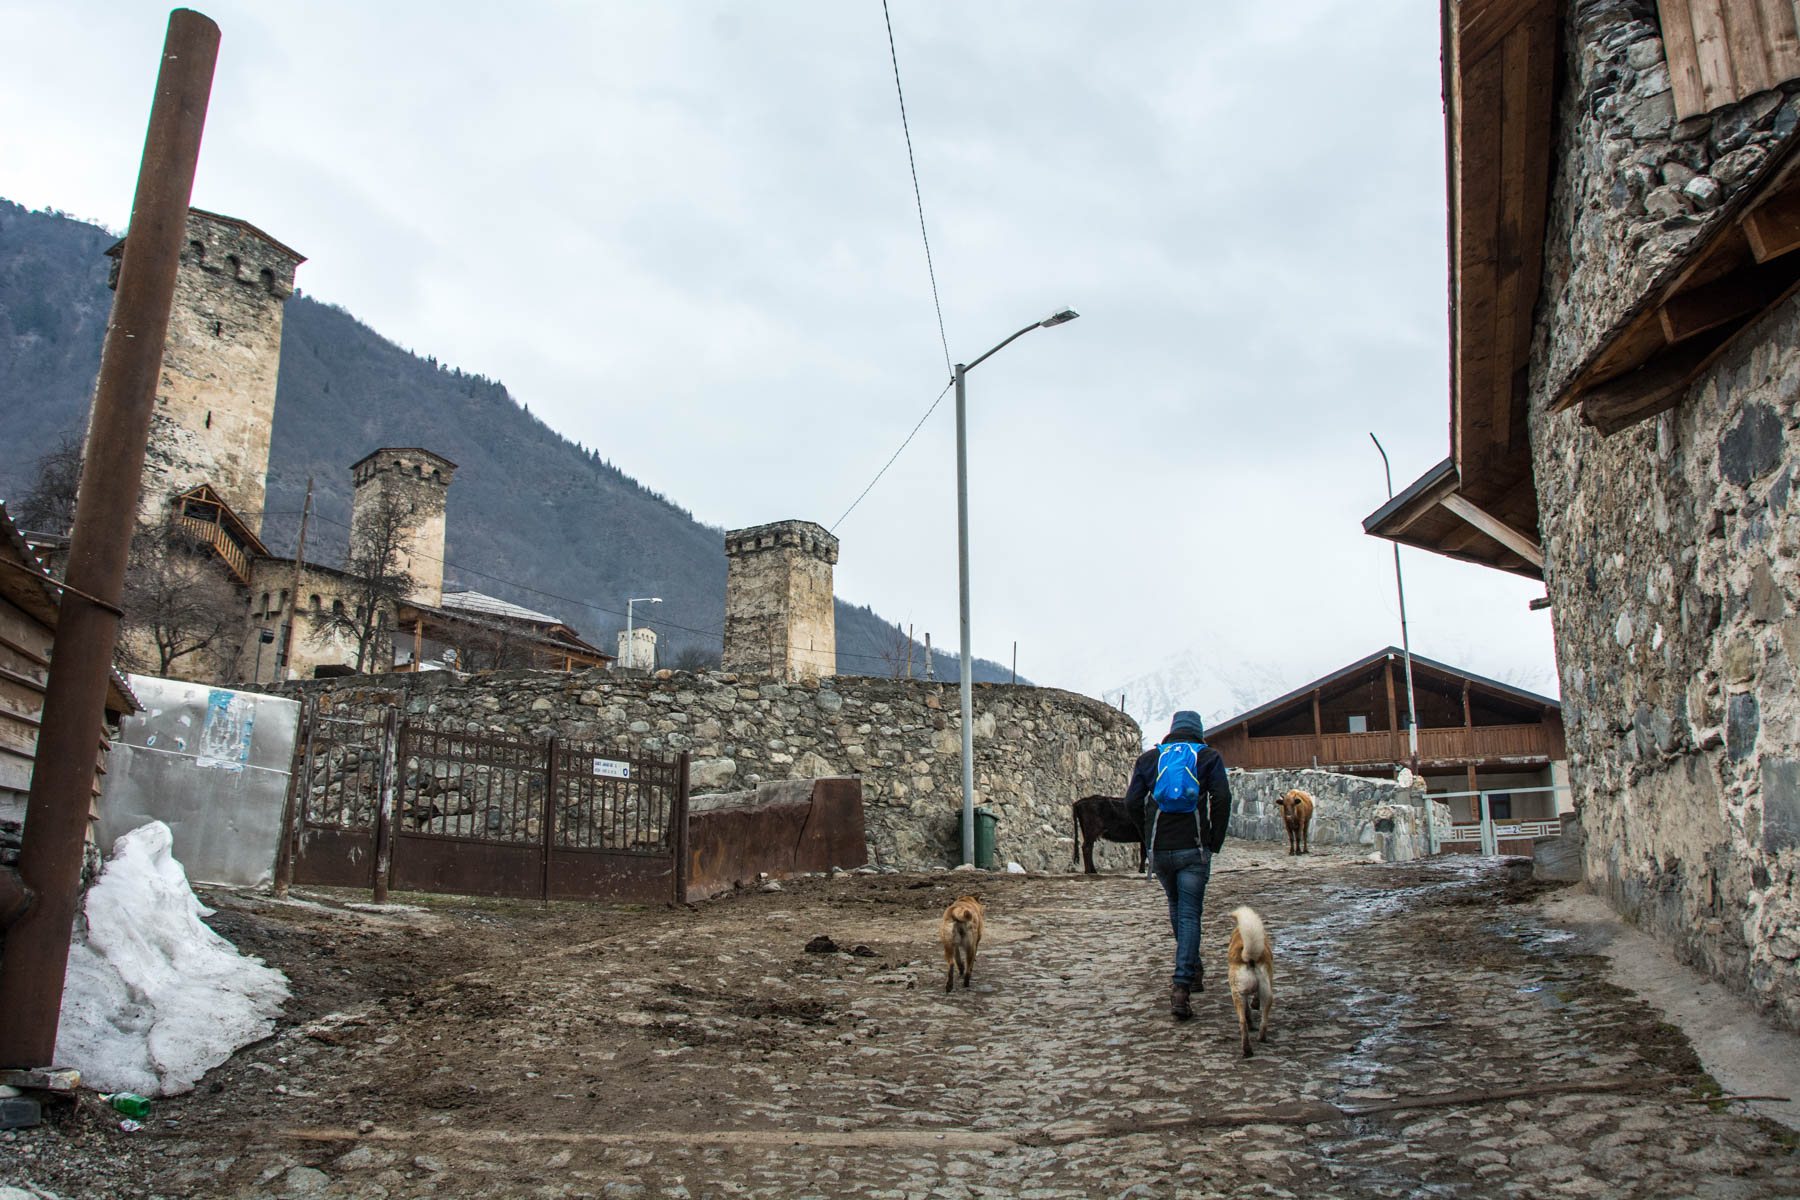 Stray dogs and Svan towers in Mestia Svaneti Georgia